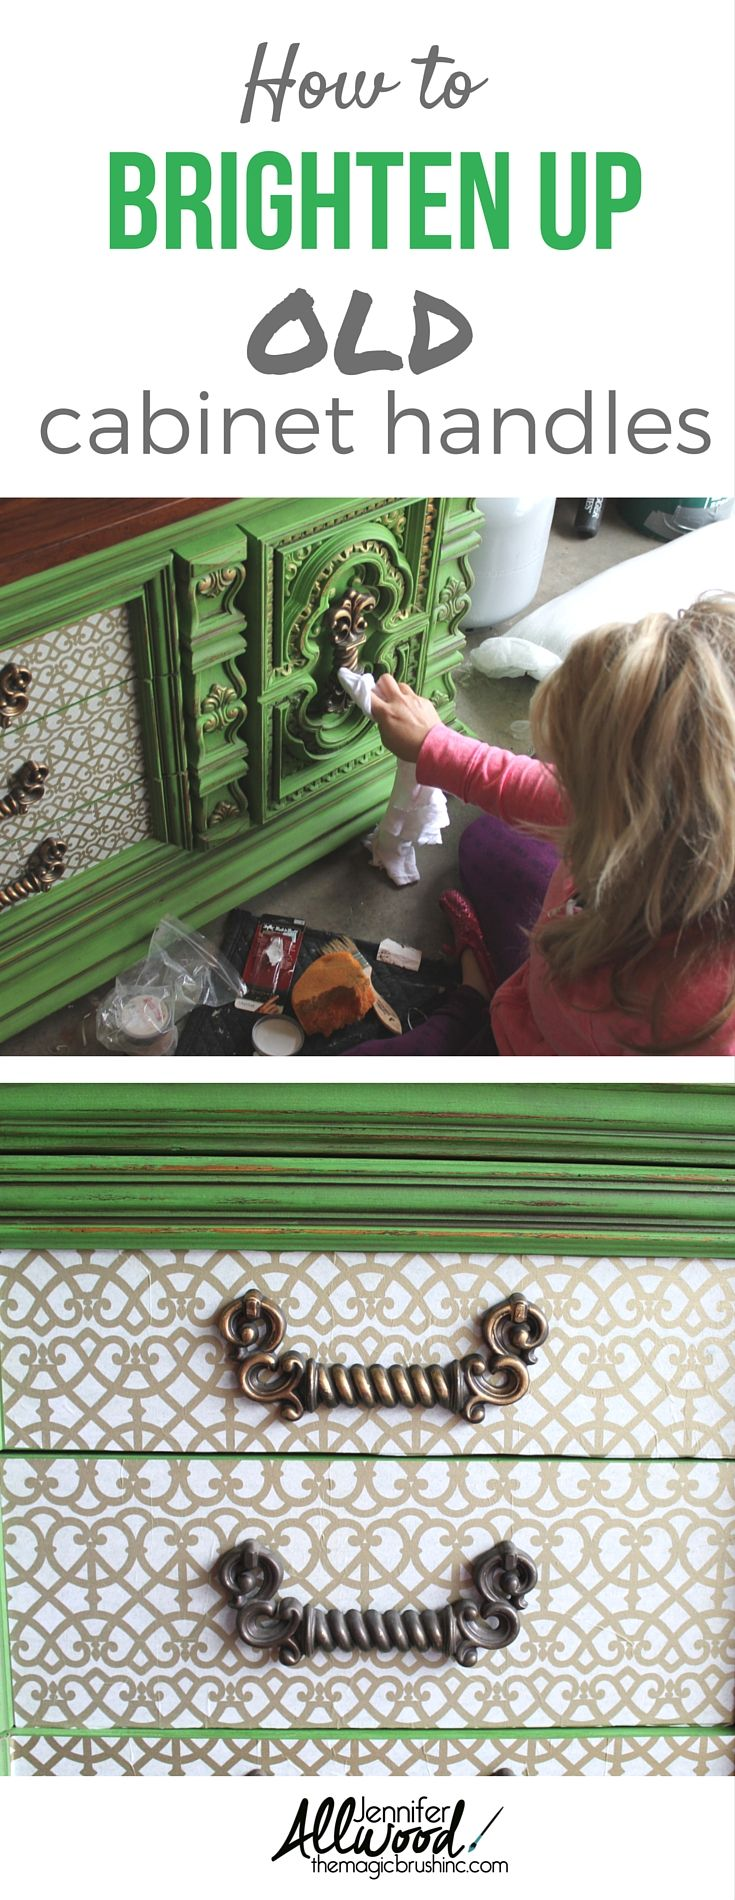 Here's how to brighten up old, dingy cabinet handles using Rub and Buff. It's a great hack for your DIY furniture makeovers. More decorating projects, painting tips, and color advice at theMagicBrushinc.com